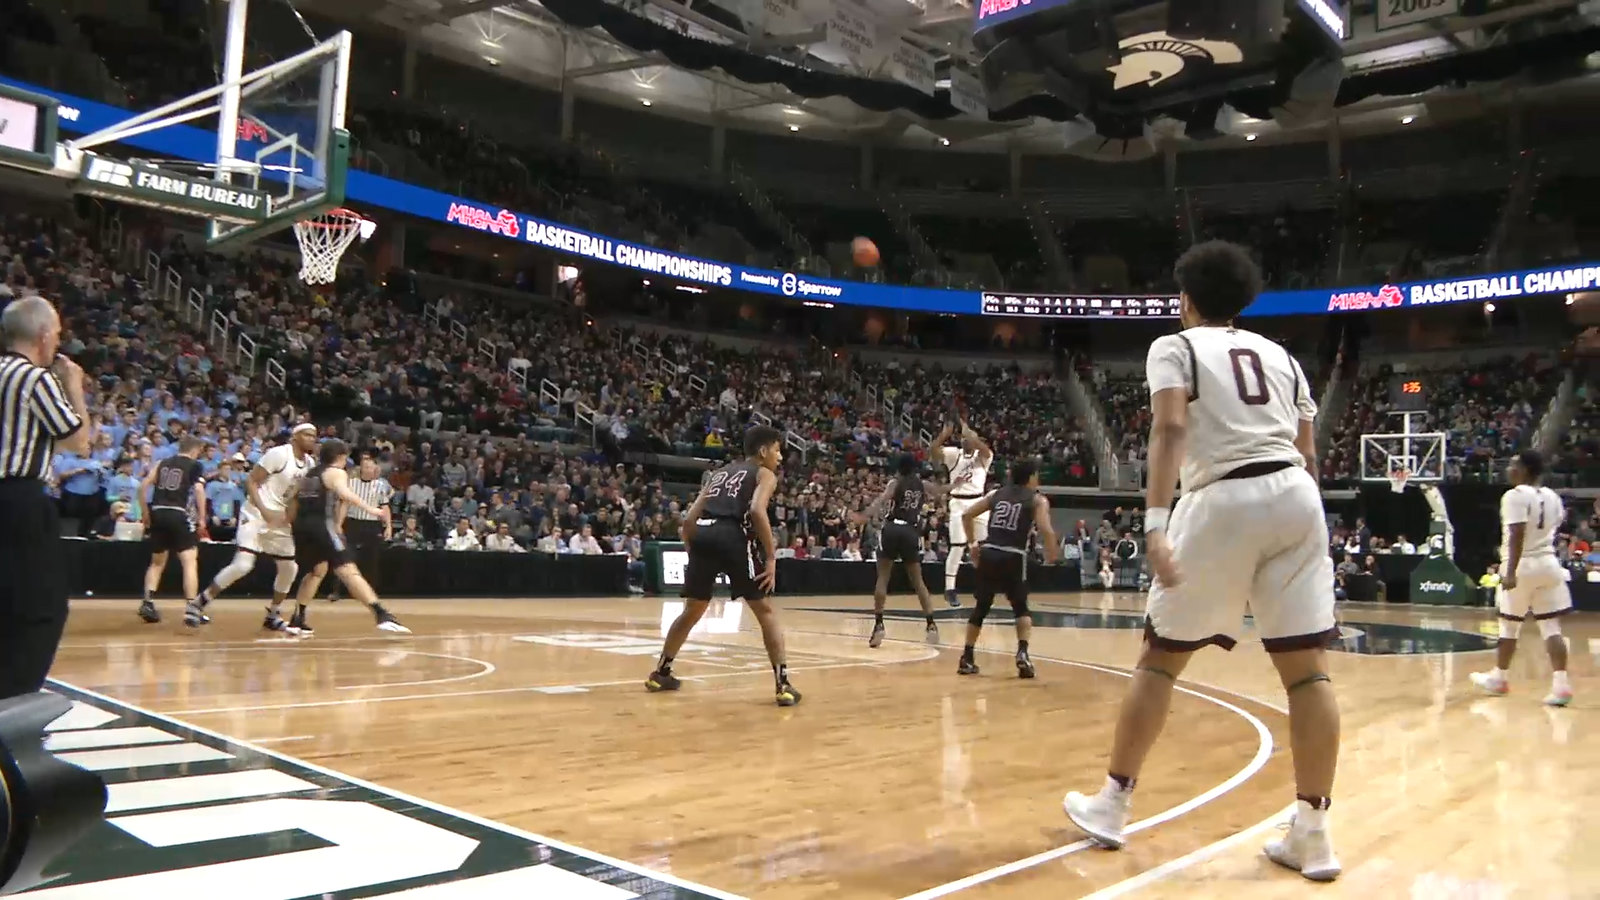 Okemos Ends the Season in Semifinals at the Breslin